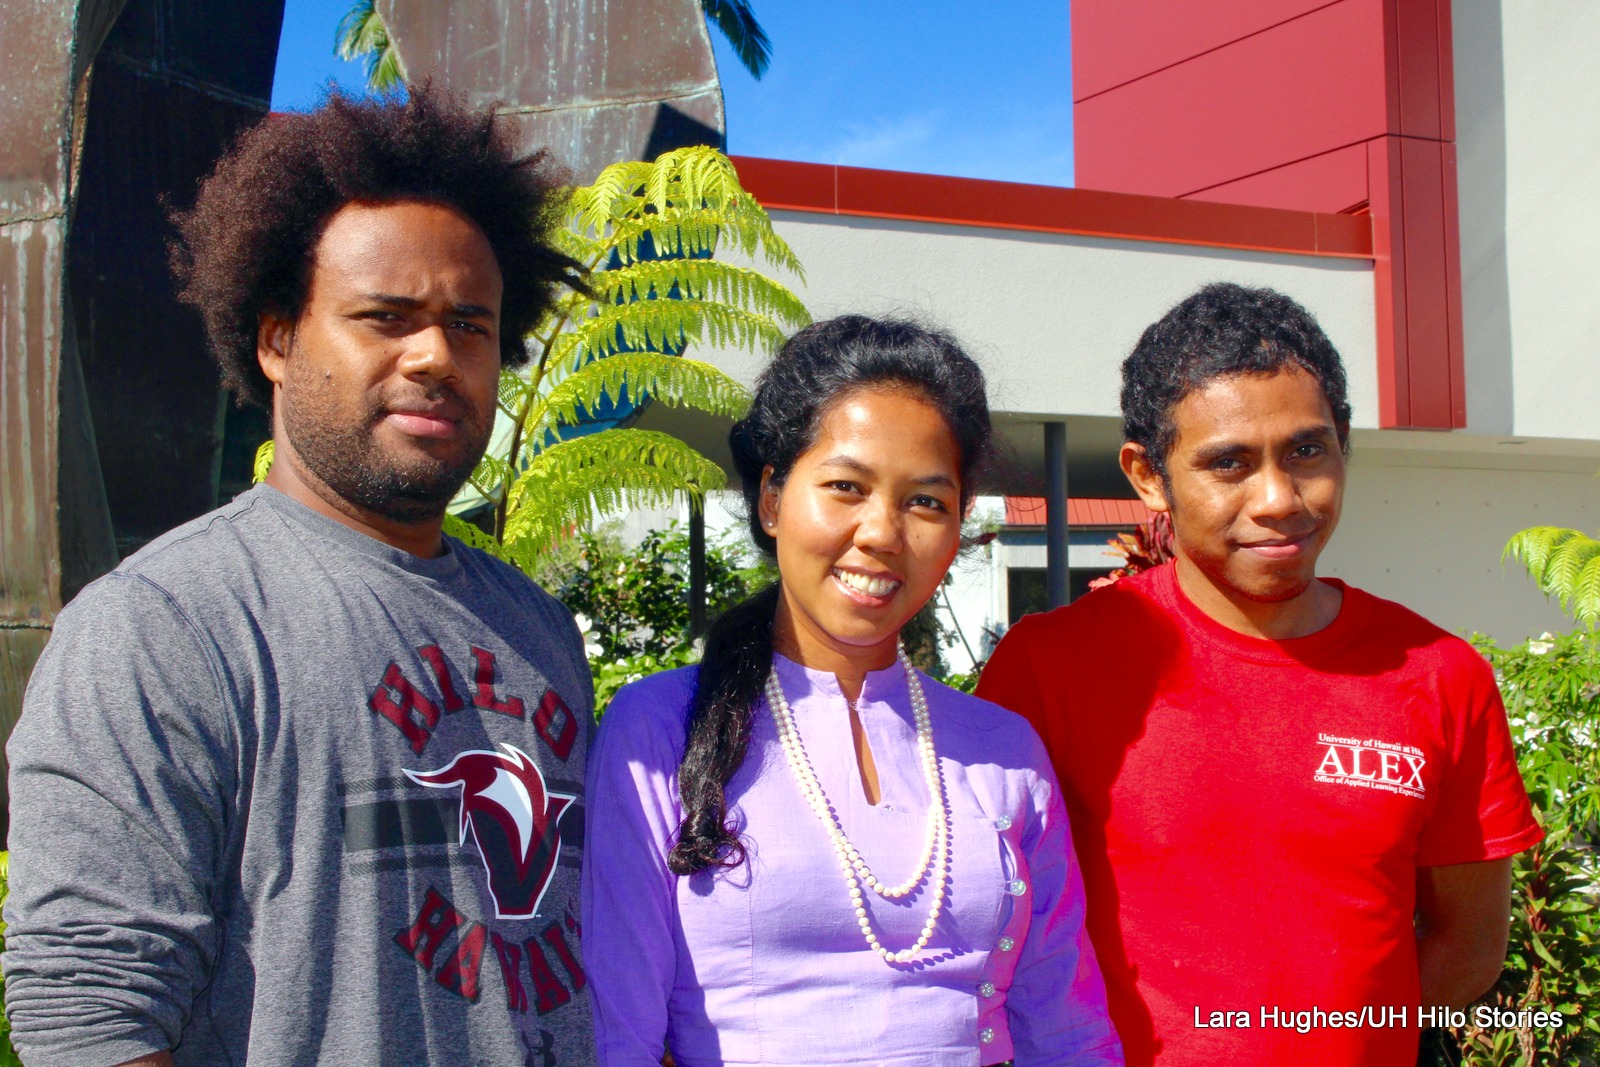 Students share their stories at UH Hilo International Film Festival